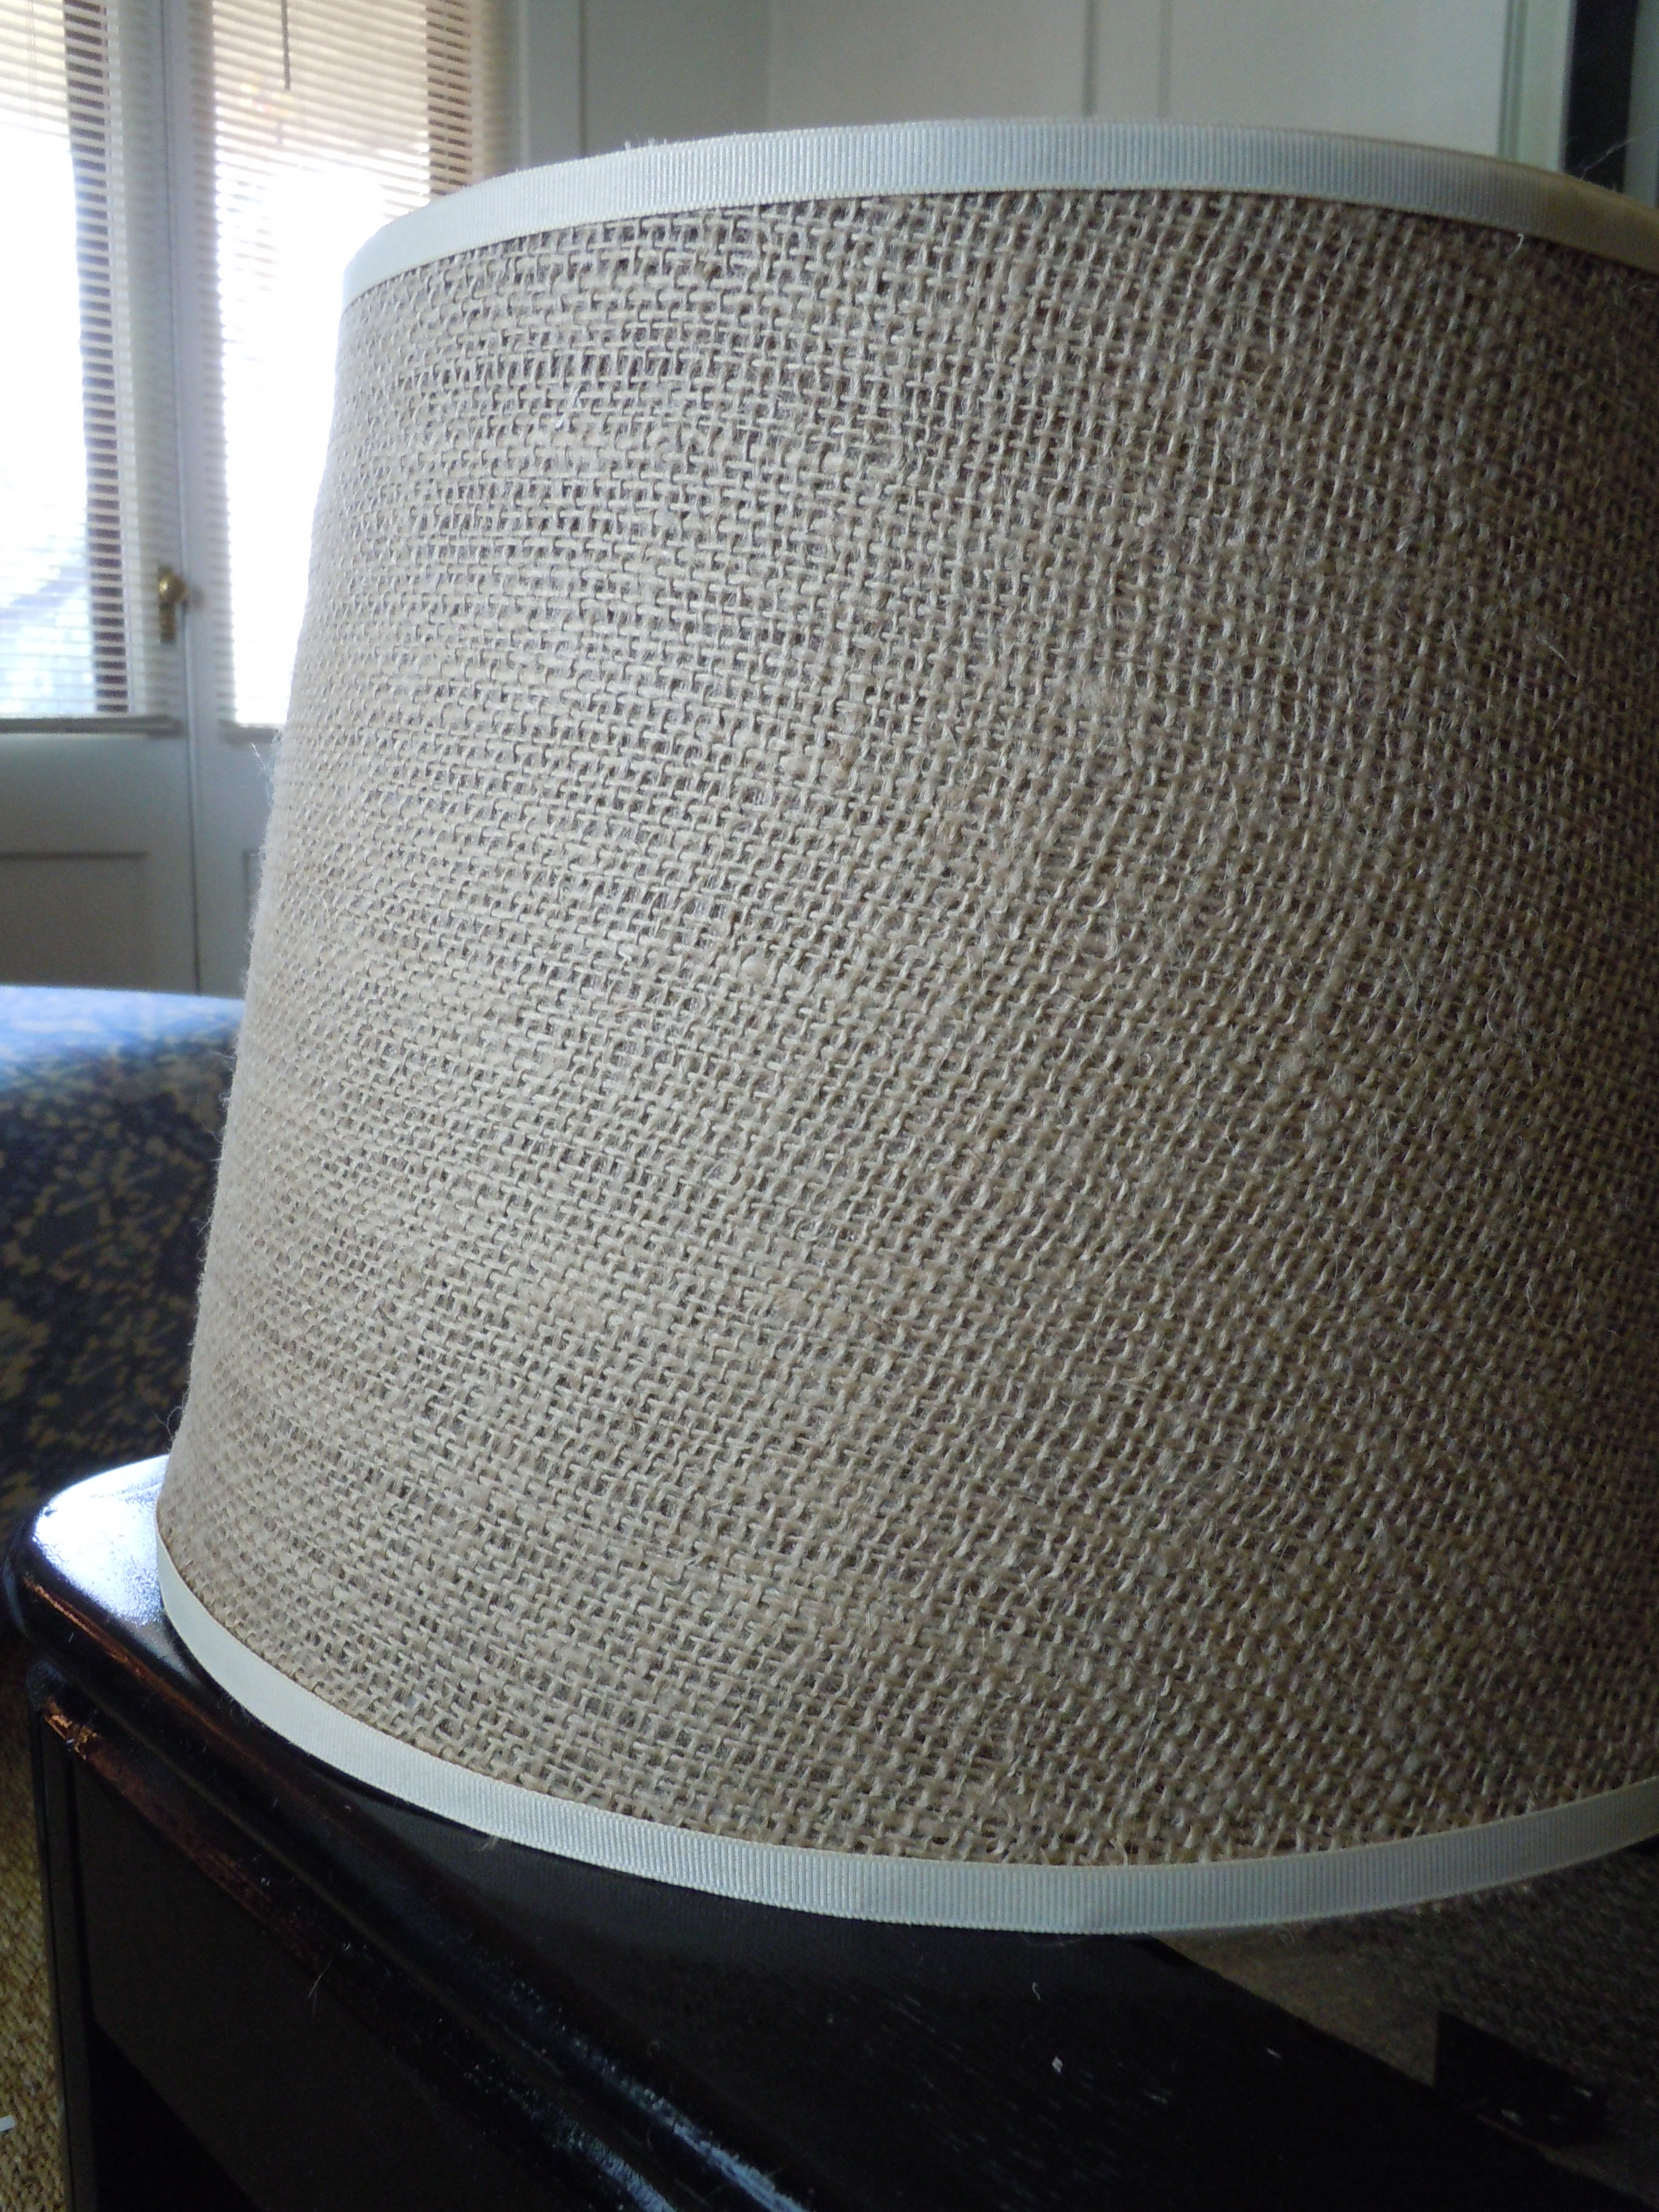 How To Make Your Own Lampshade Suitepotato